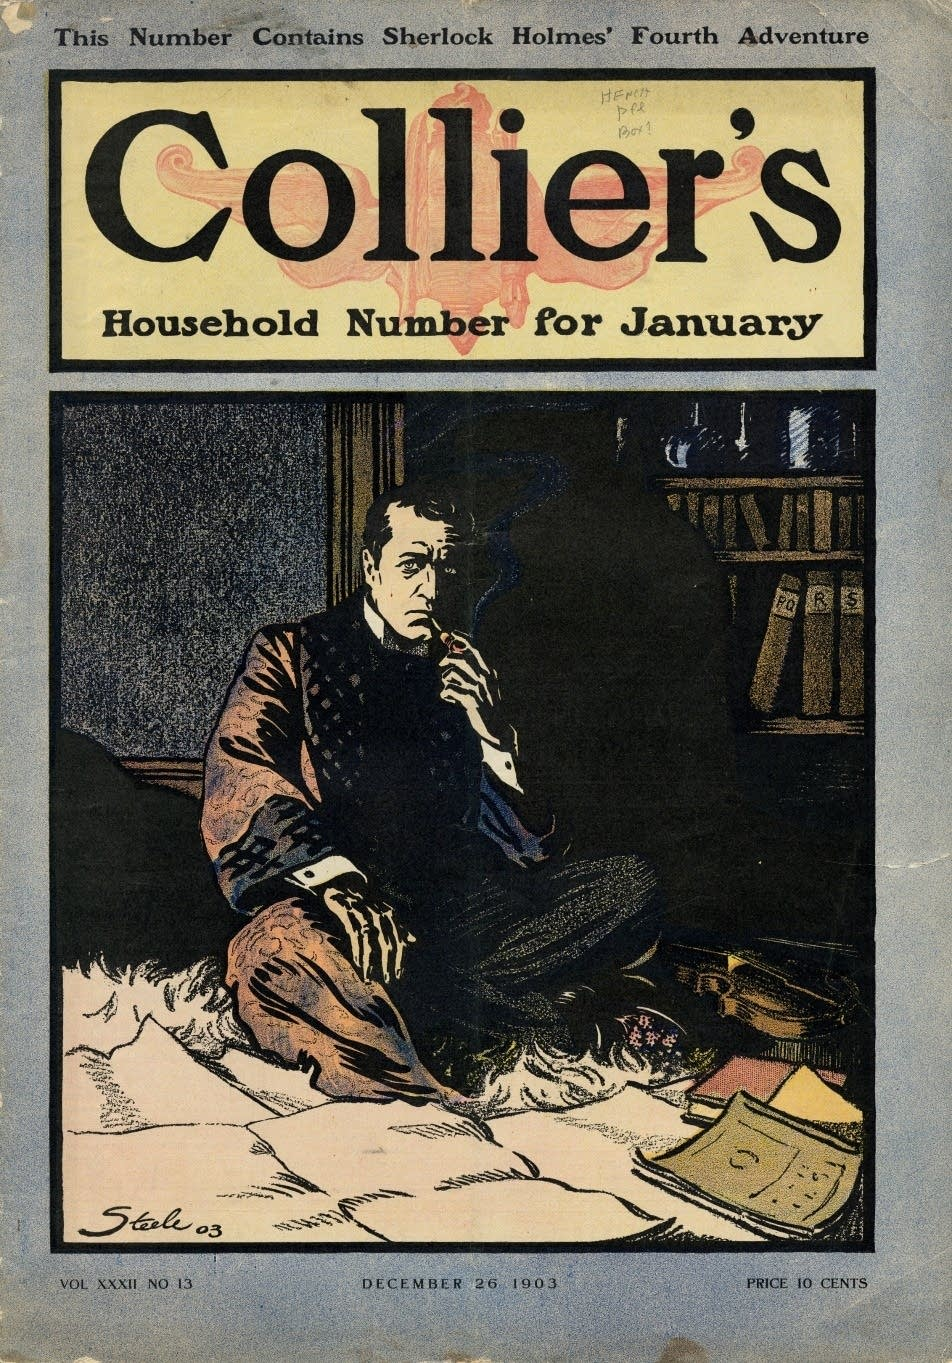 Sherlock Holmes on the cover of Collier's, 1903